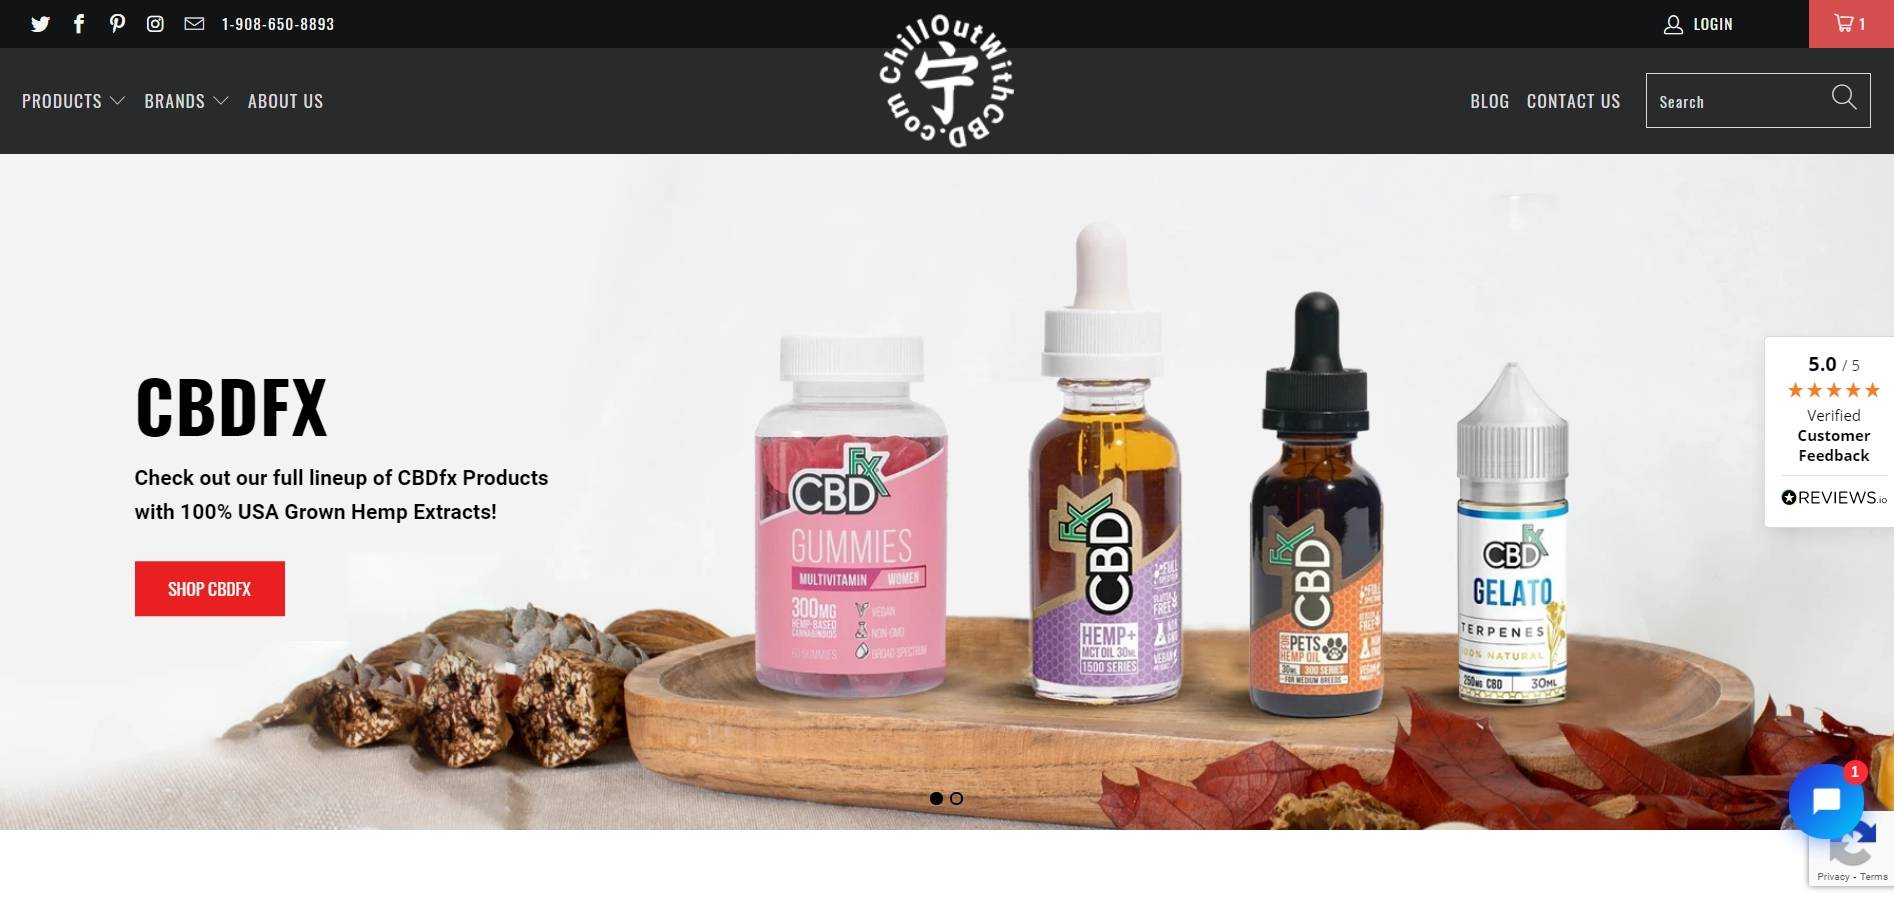 Chill Out With CBD